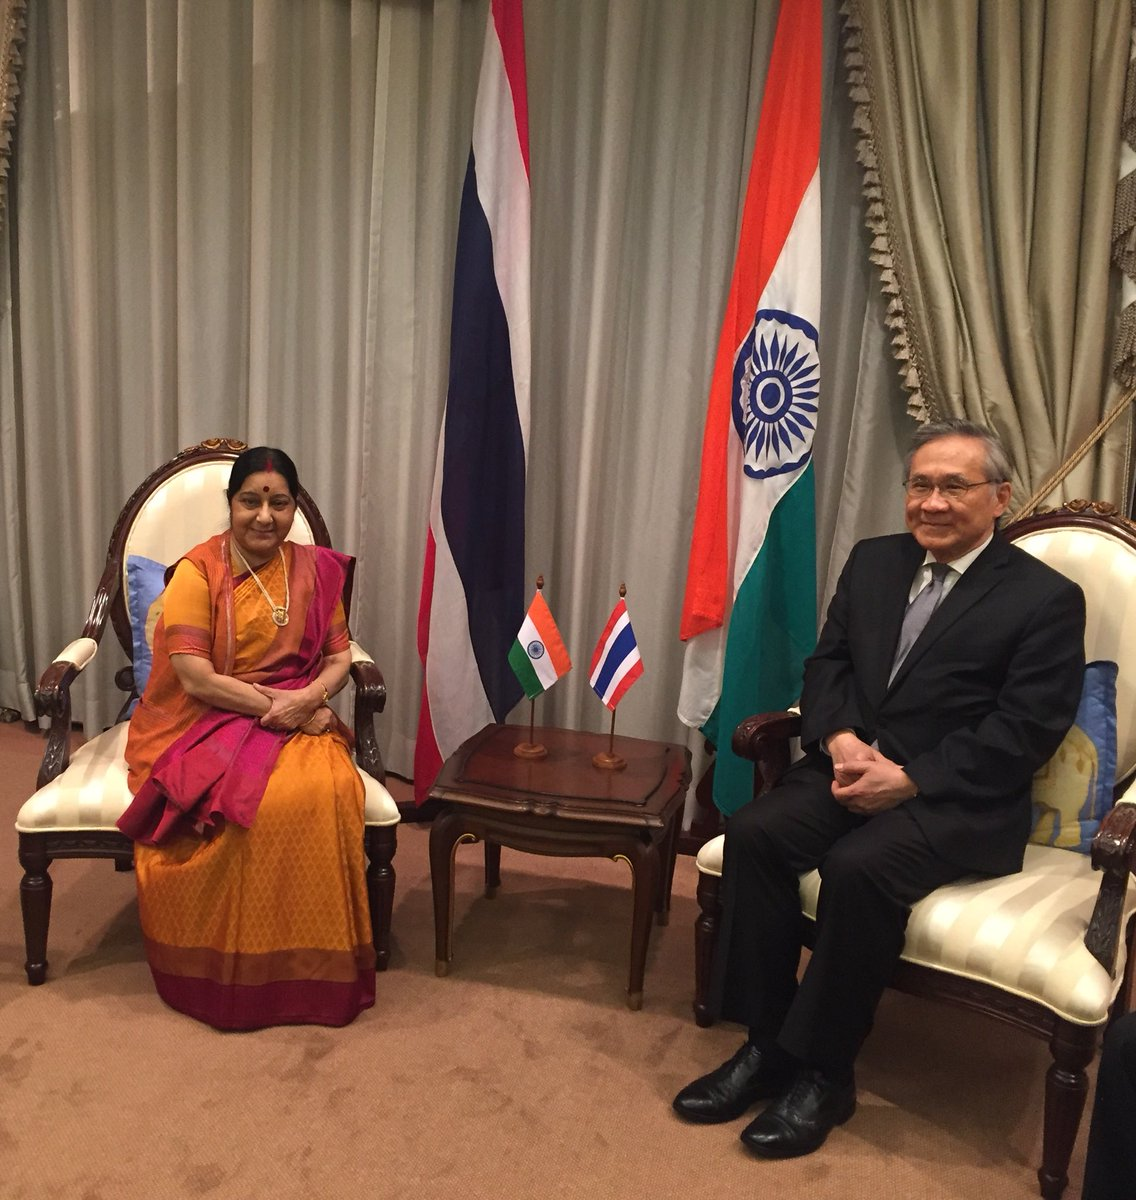 In first leg of three nation tour, the  Indian Minister for External Affairs Sushma Swaraj arrived in Thailand on 4 January to discussed issues of connectivity, security and cultural cooperation with Don Pramudwinai, Foreign Minister of Thailand.